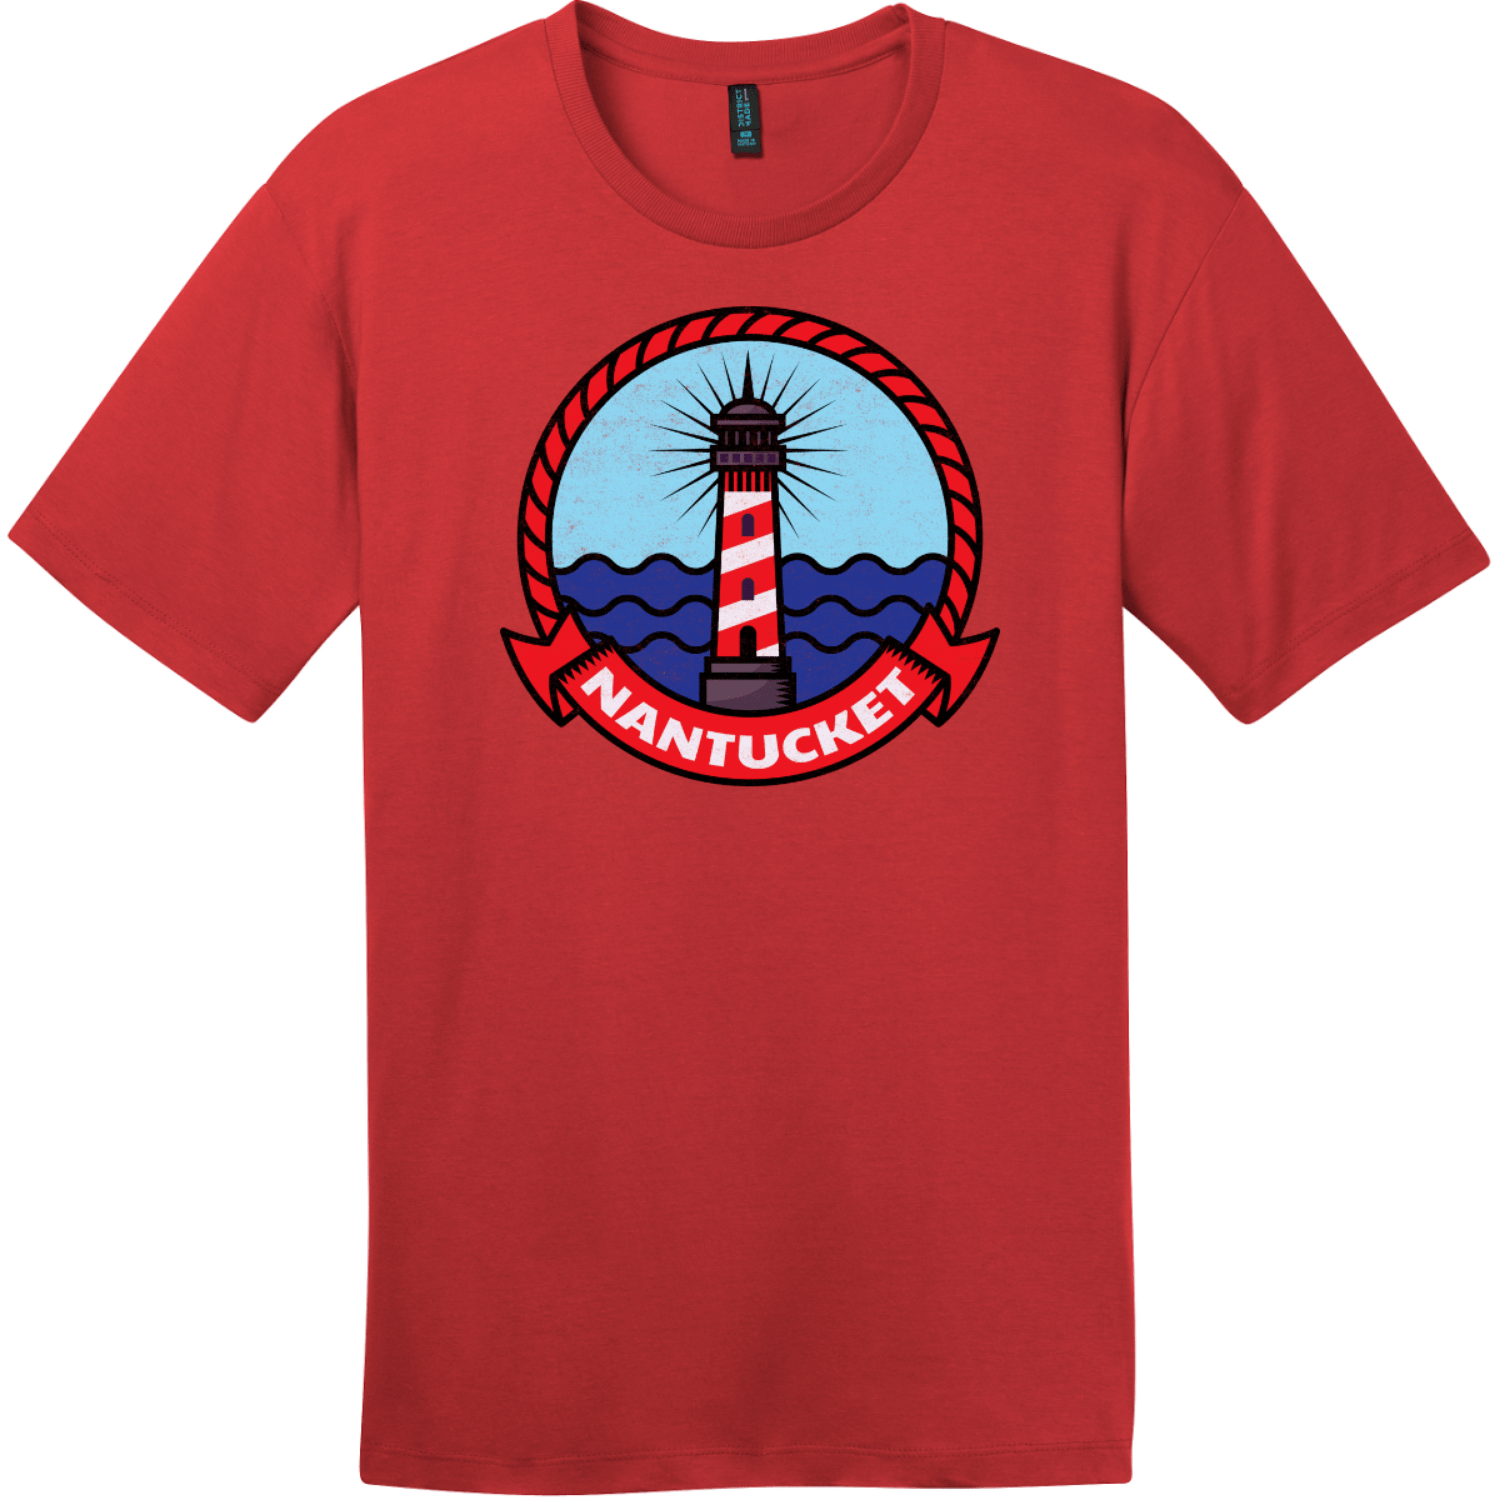 Nantucket Maine Lighthouse Distressed T-Shirt Classic Red District Perfect Weight Tee DT104